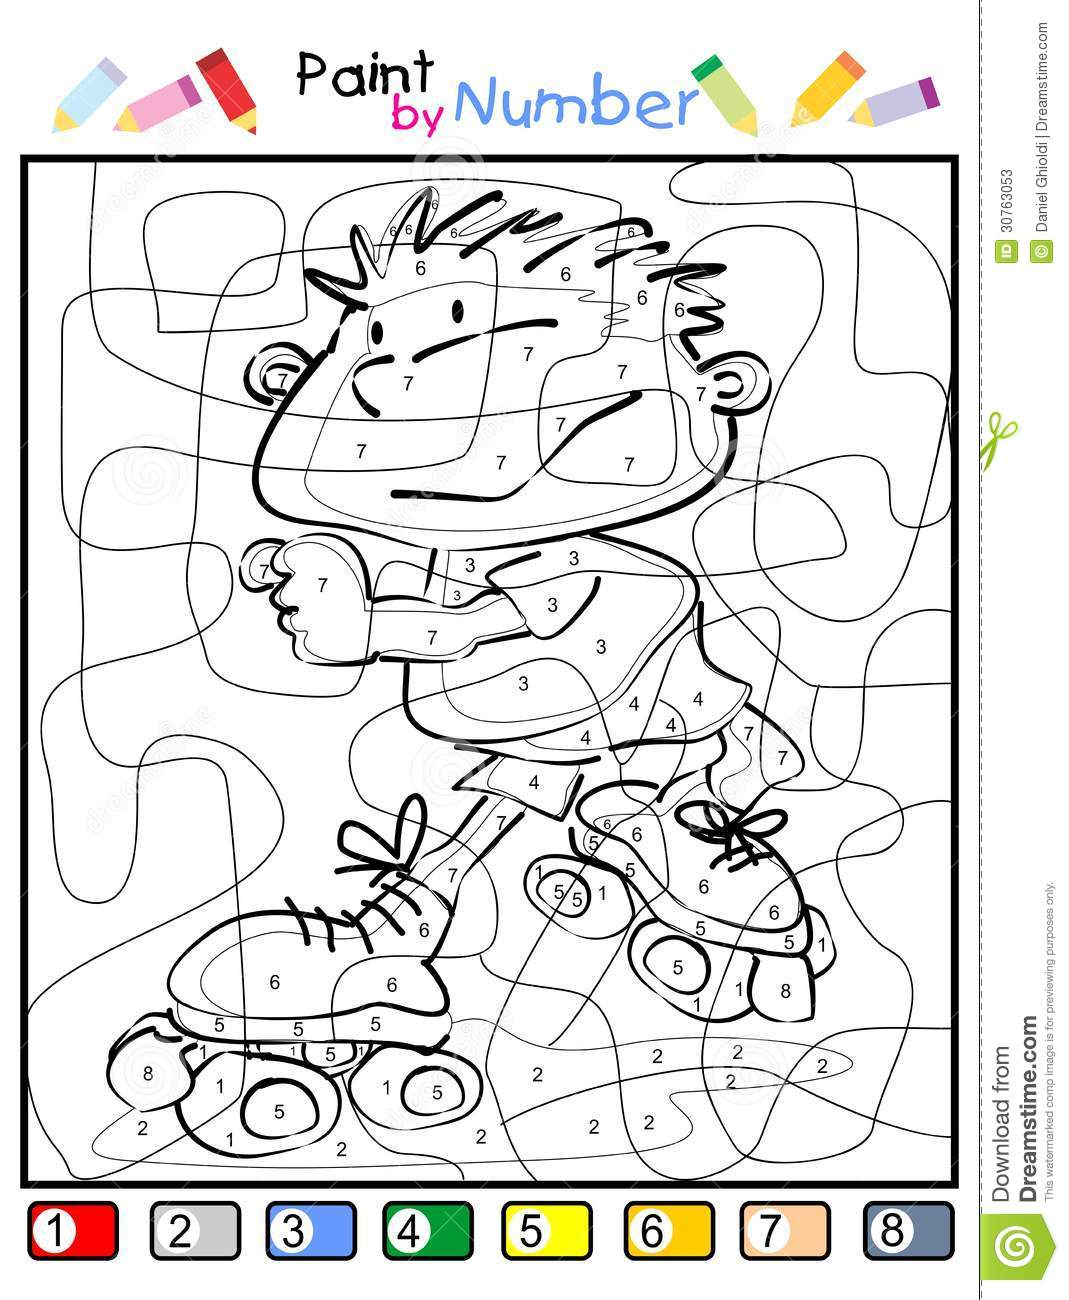 Free coloring pages of paint by